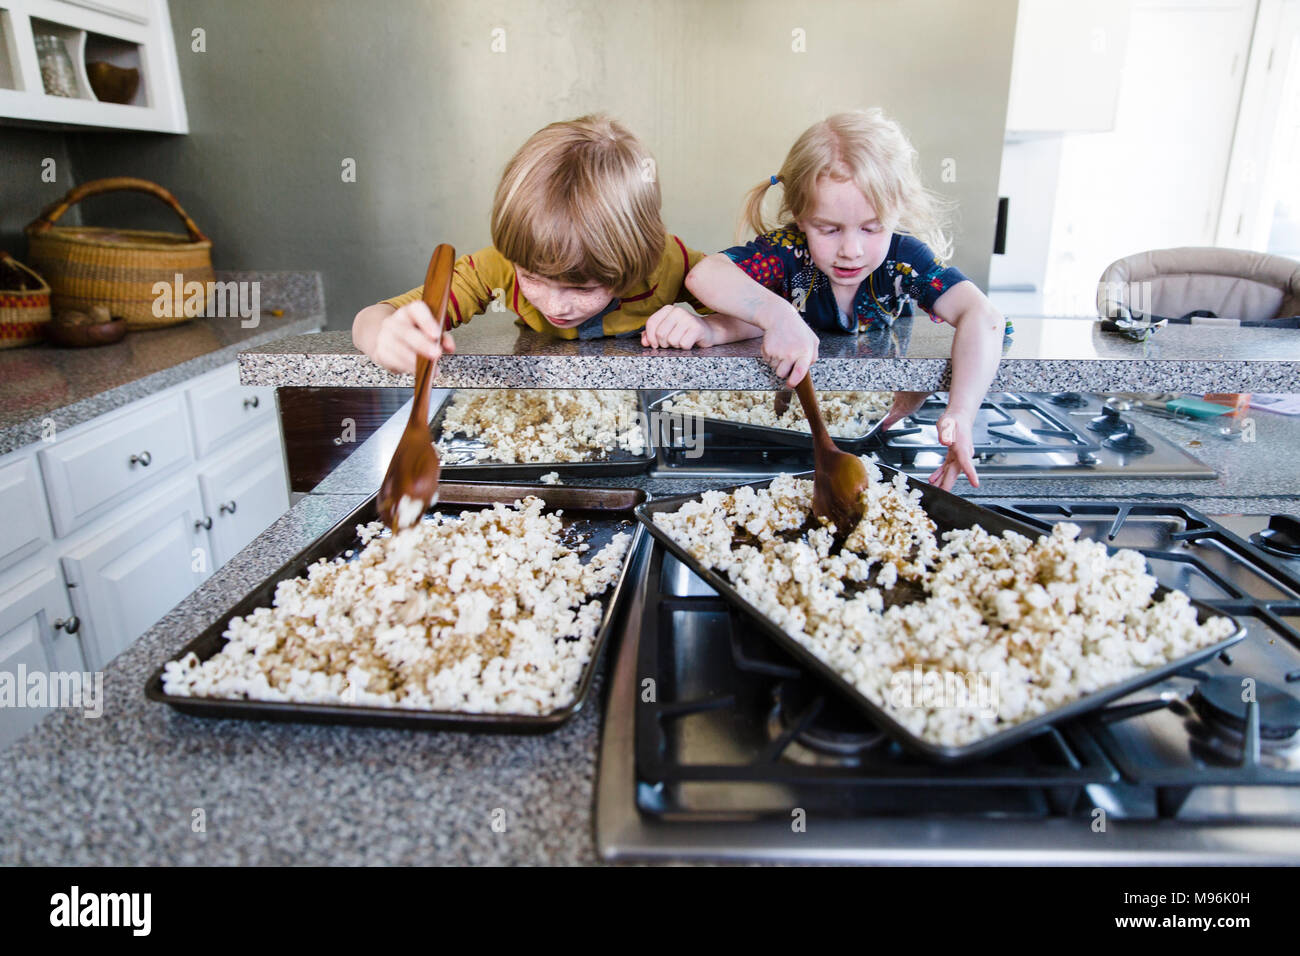 Children picking up popcorn from tray - Stock Image